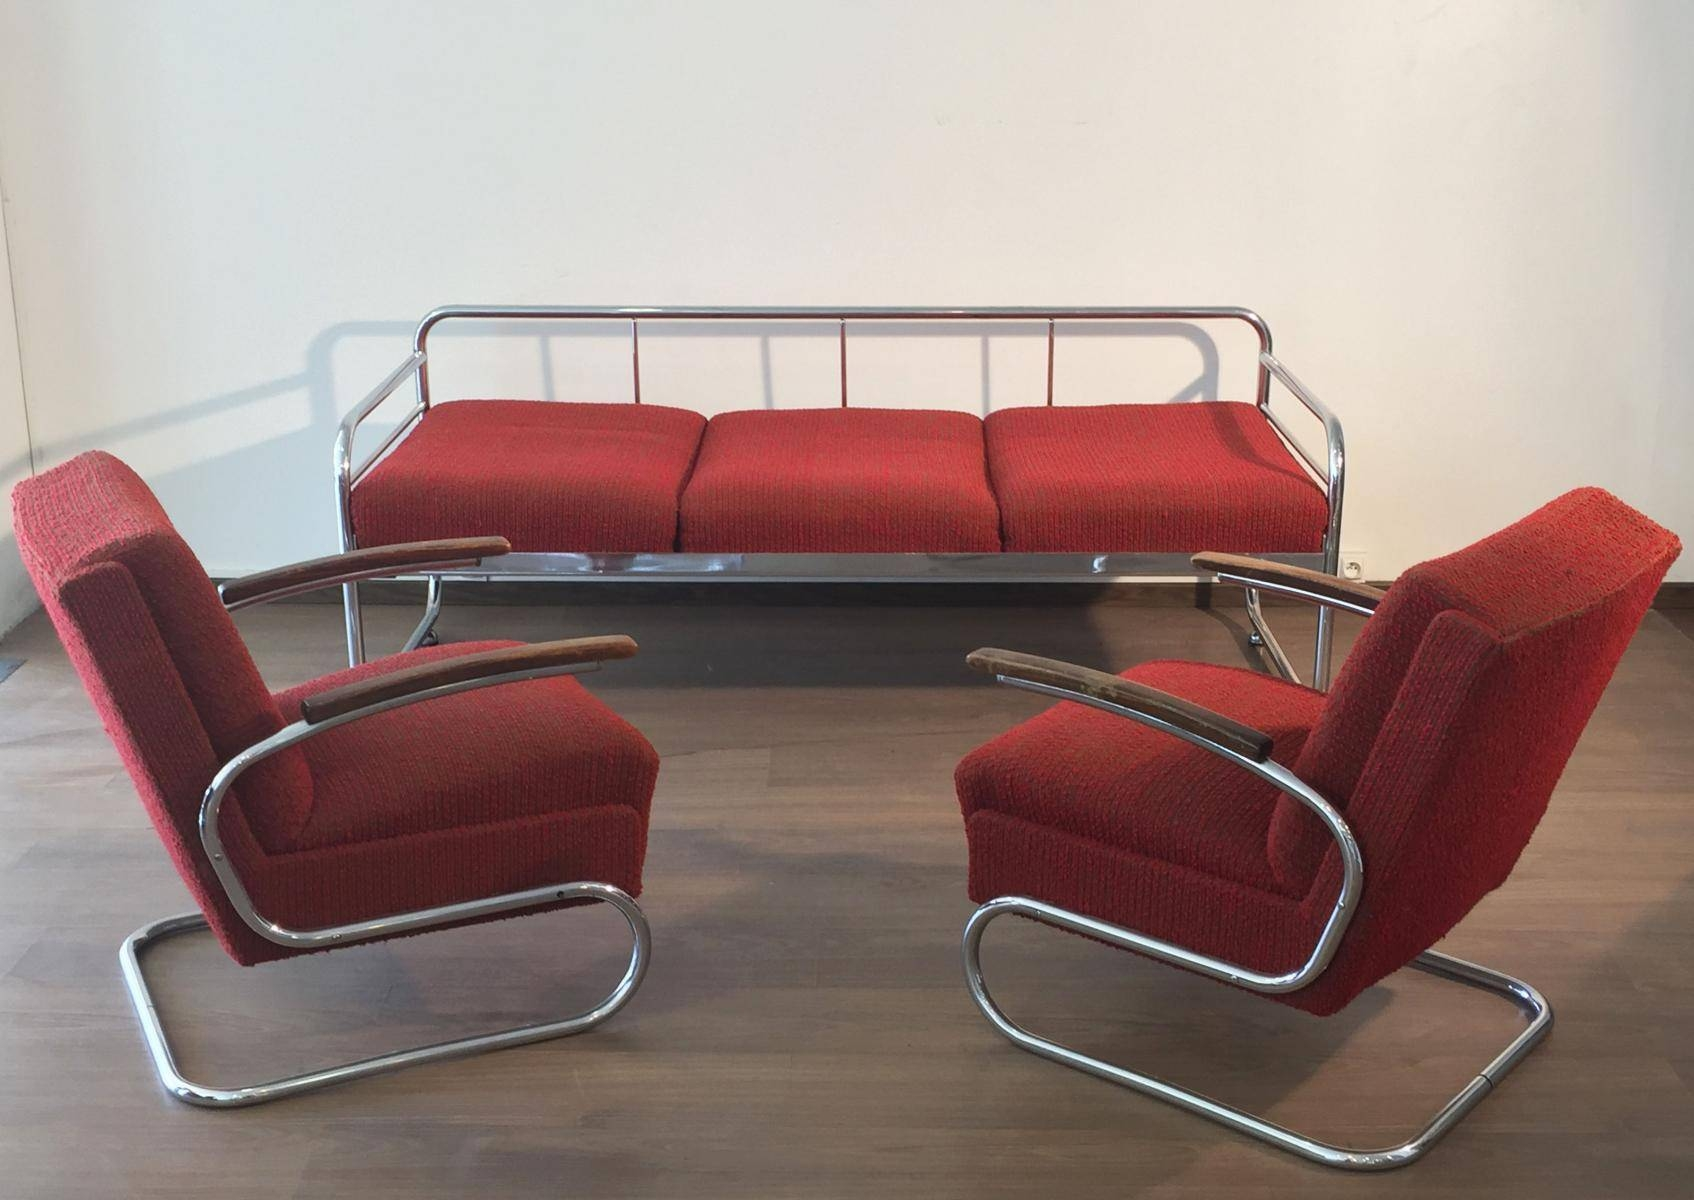 Czech Tubular Modernist Bauhaus Sofa From Slezak Zavody, 1930S For inside 1930S Couch (Image 12 of 30)